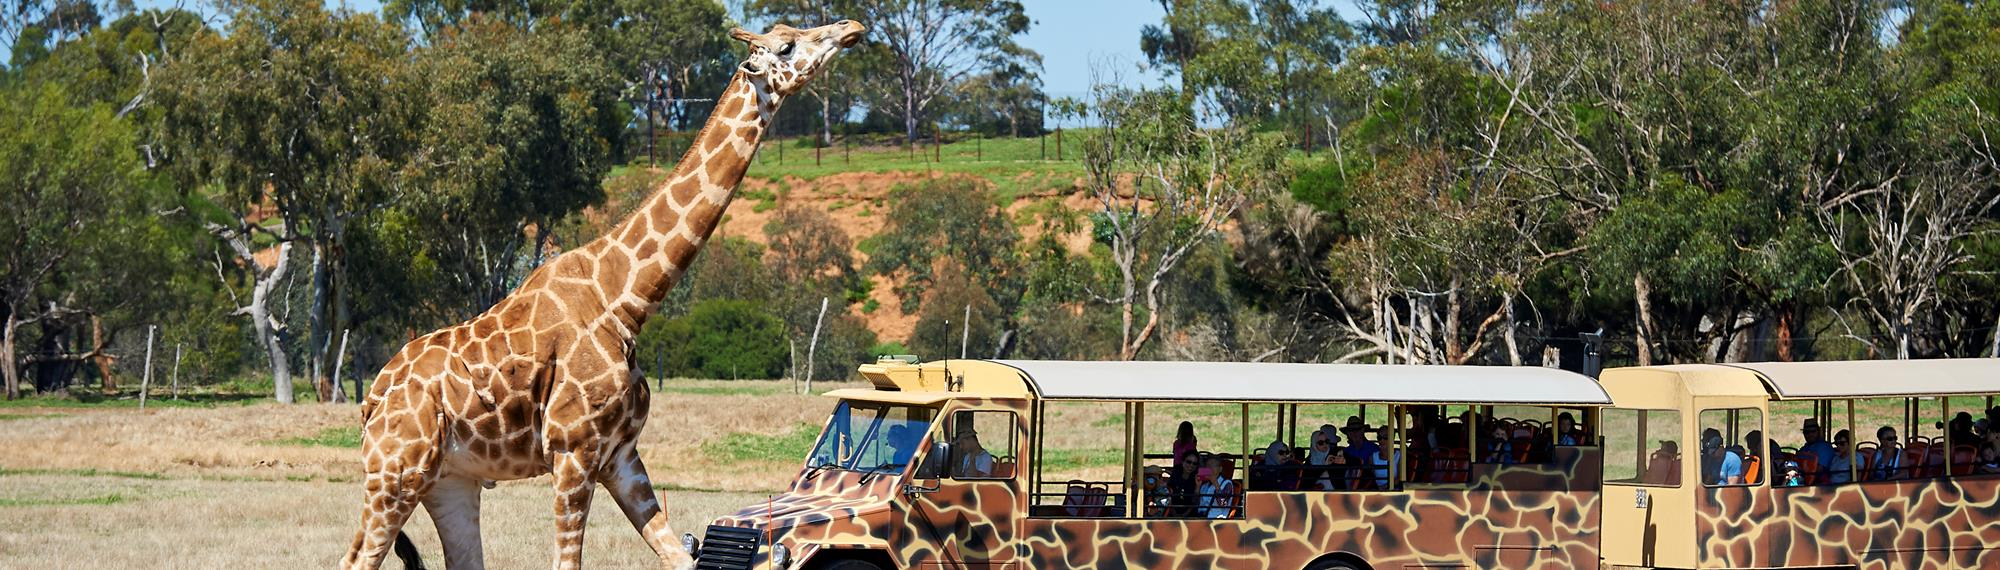 Giraffe walking next to a safari bus on the Savannah. Giraffe is looking up and visitors watch from the bus in the background.